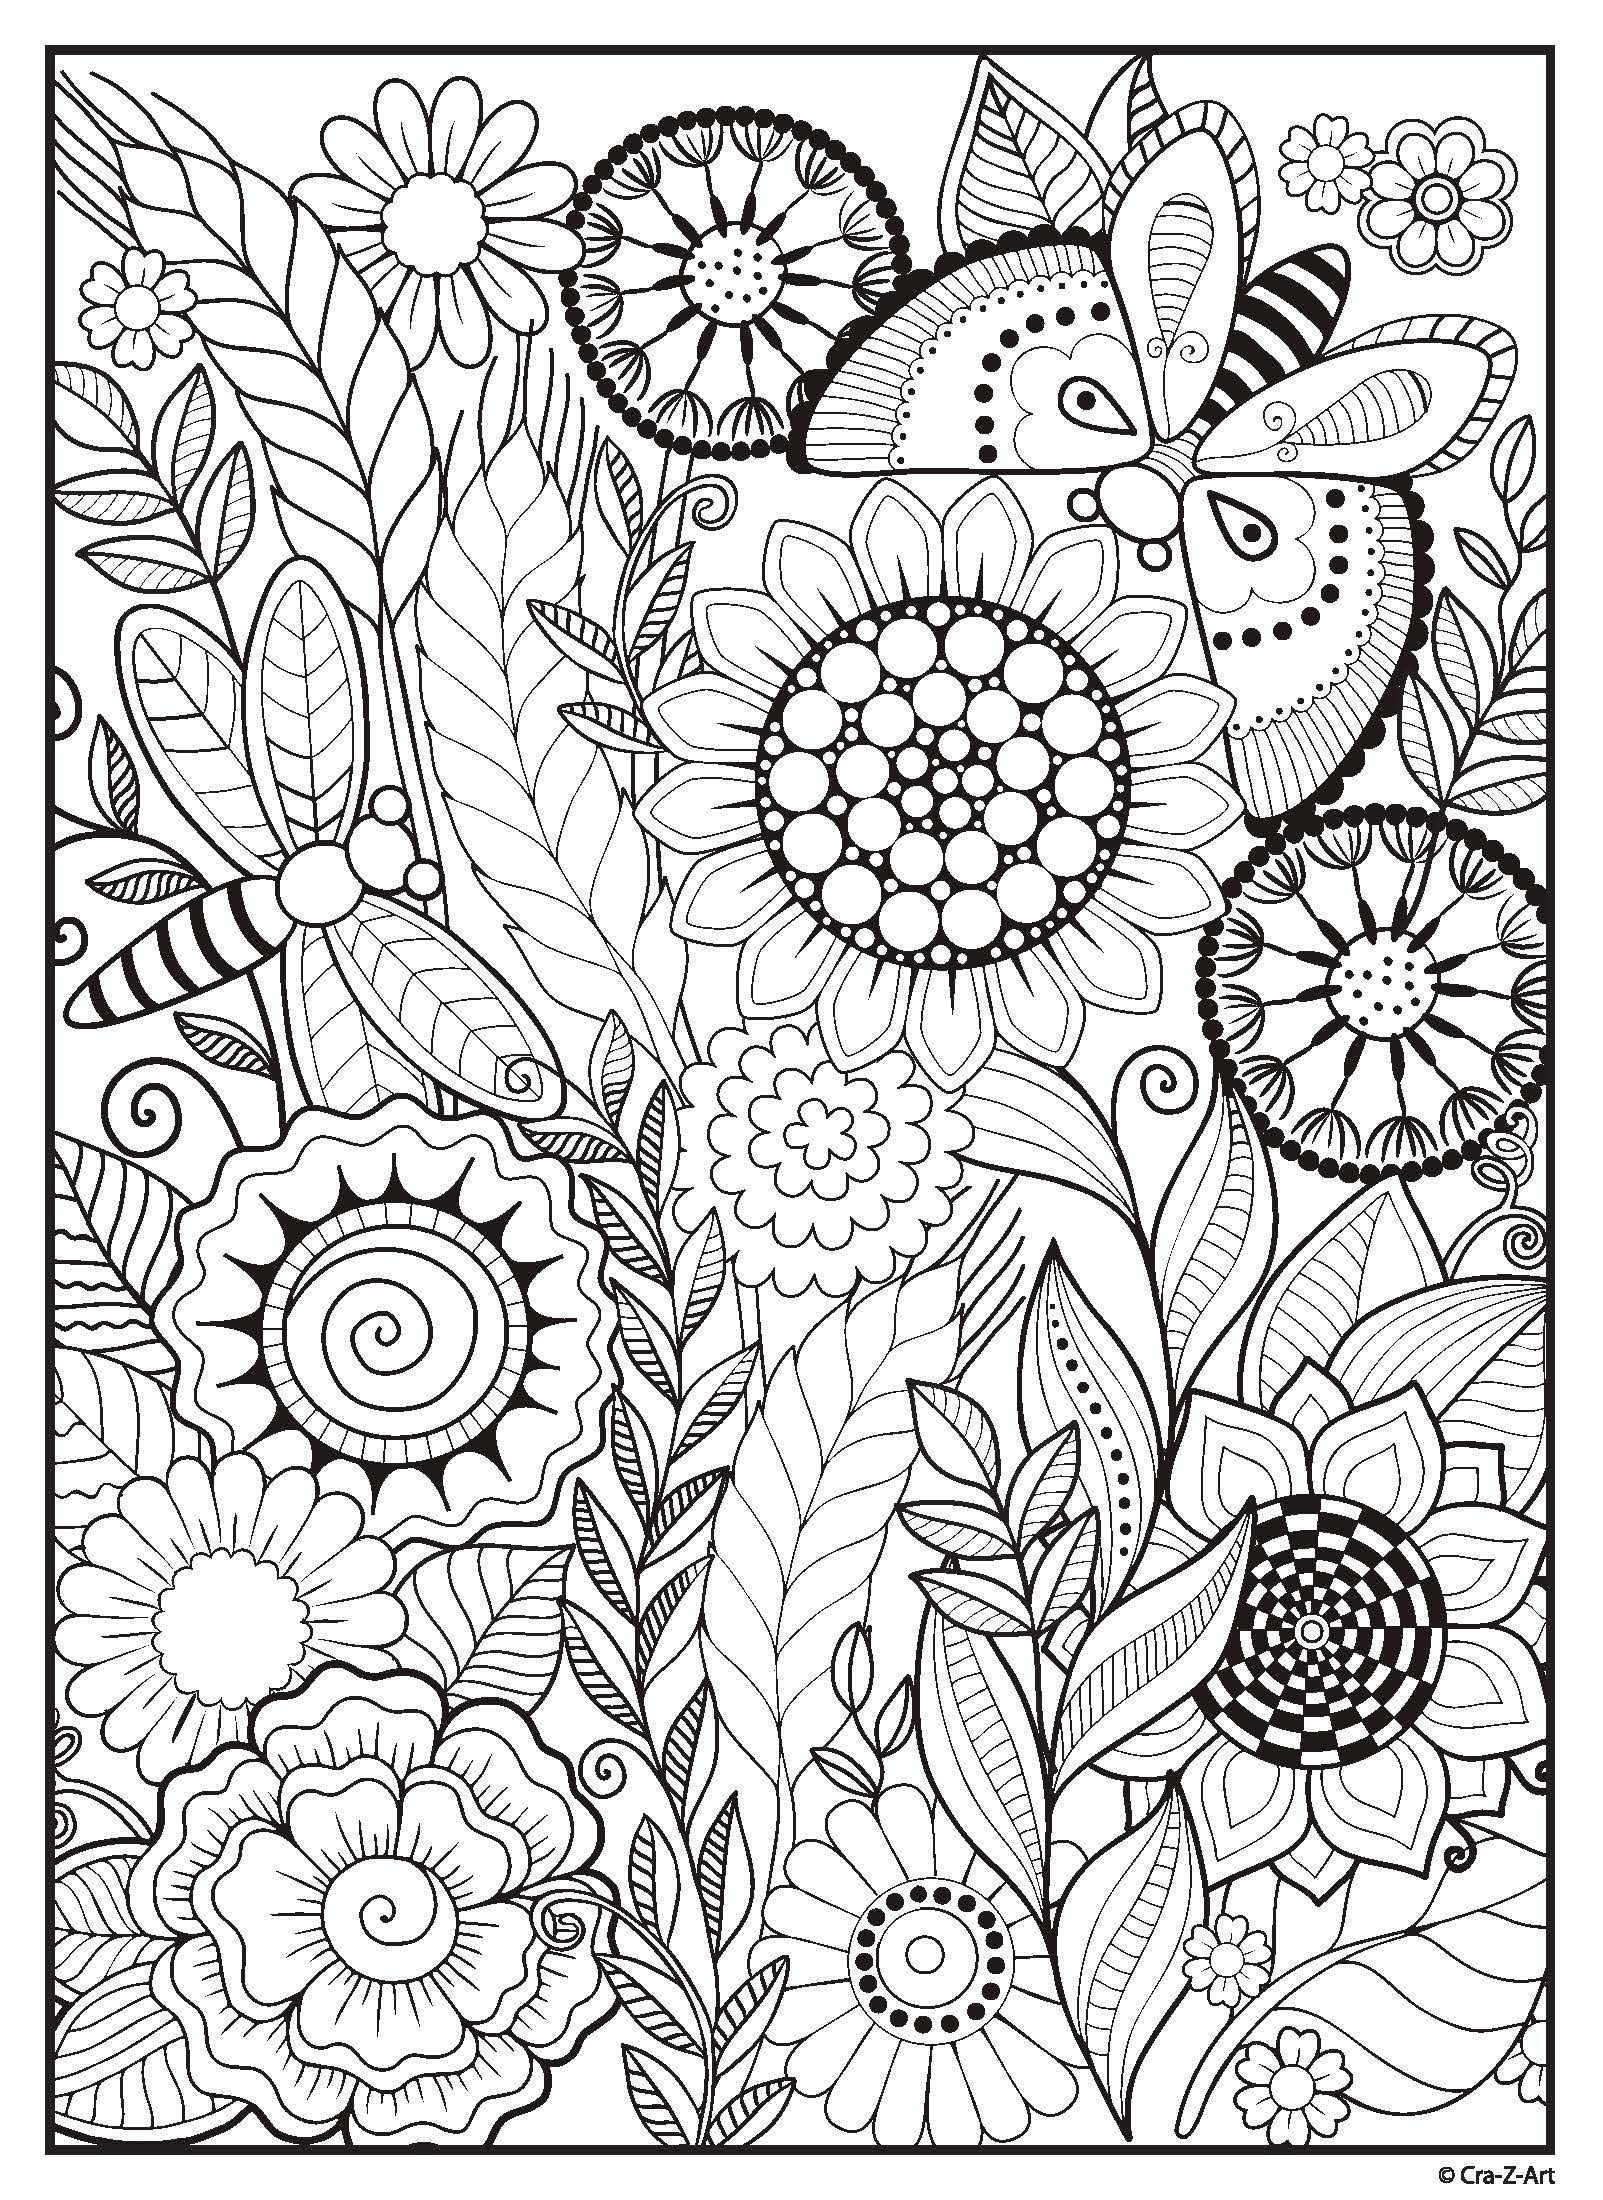 Cra Z Art Coloring Page Adventure Begins Summer Coloring Pages Mandala Coloring Pages Flower Coloring Pages